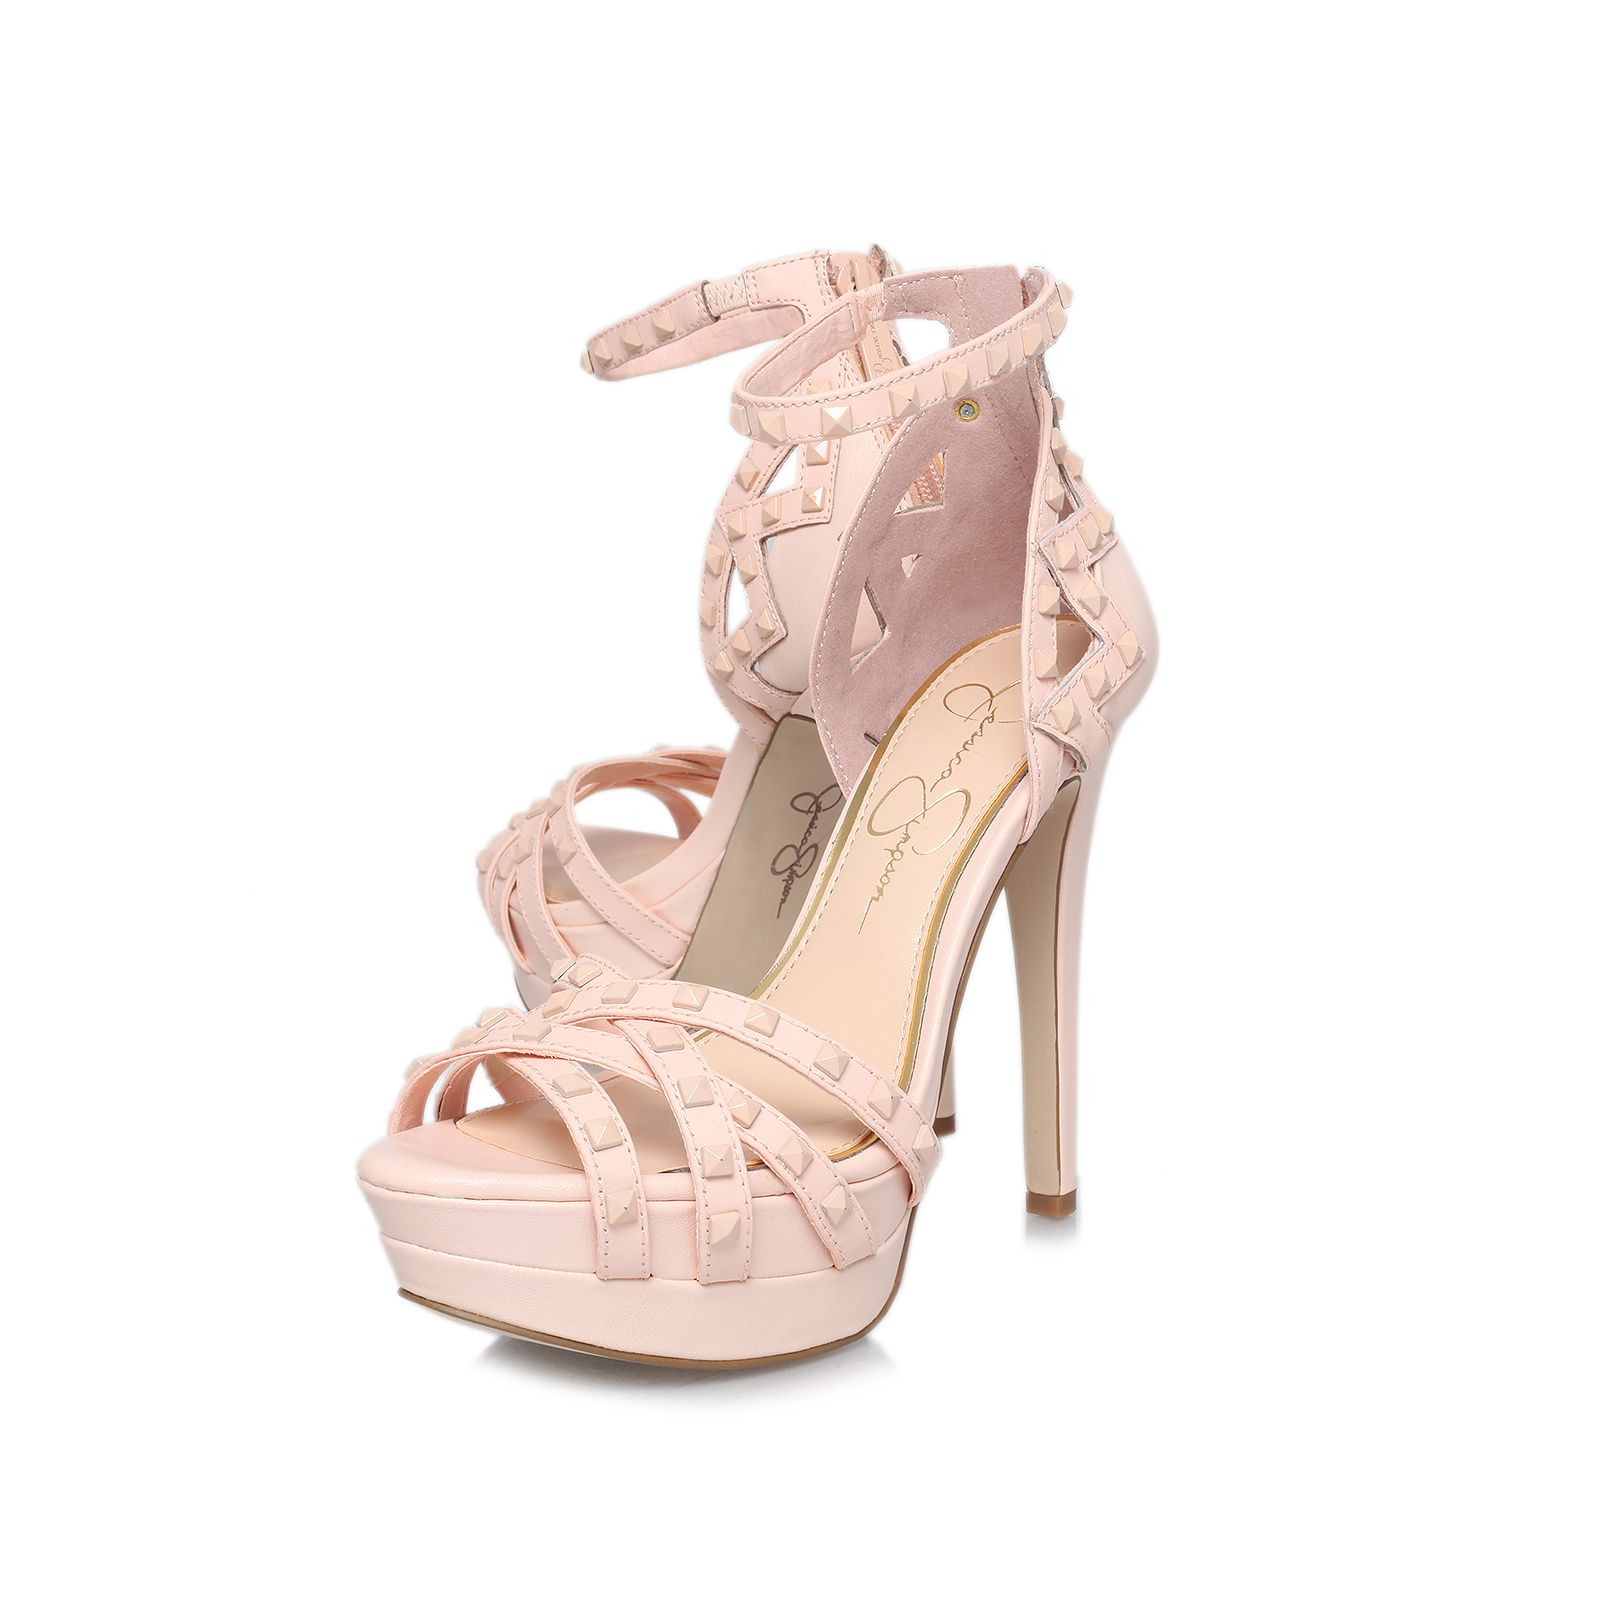 Sabreeni high heel occasion shoes